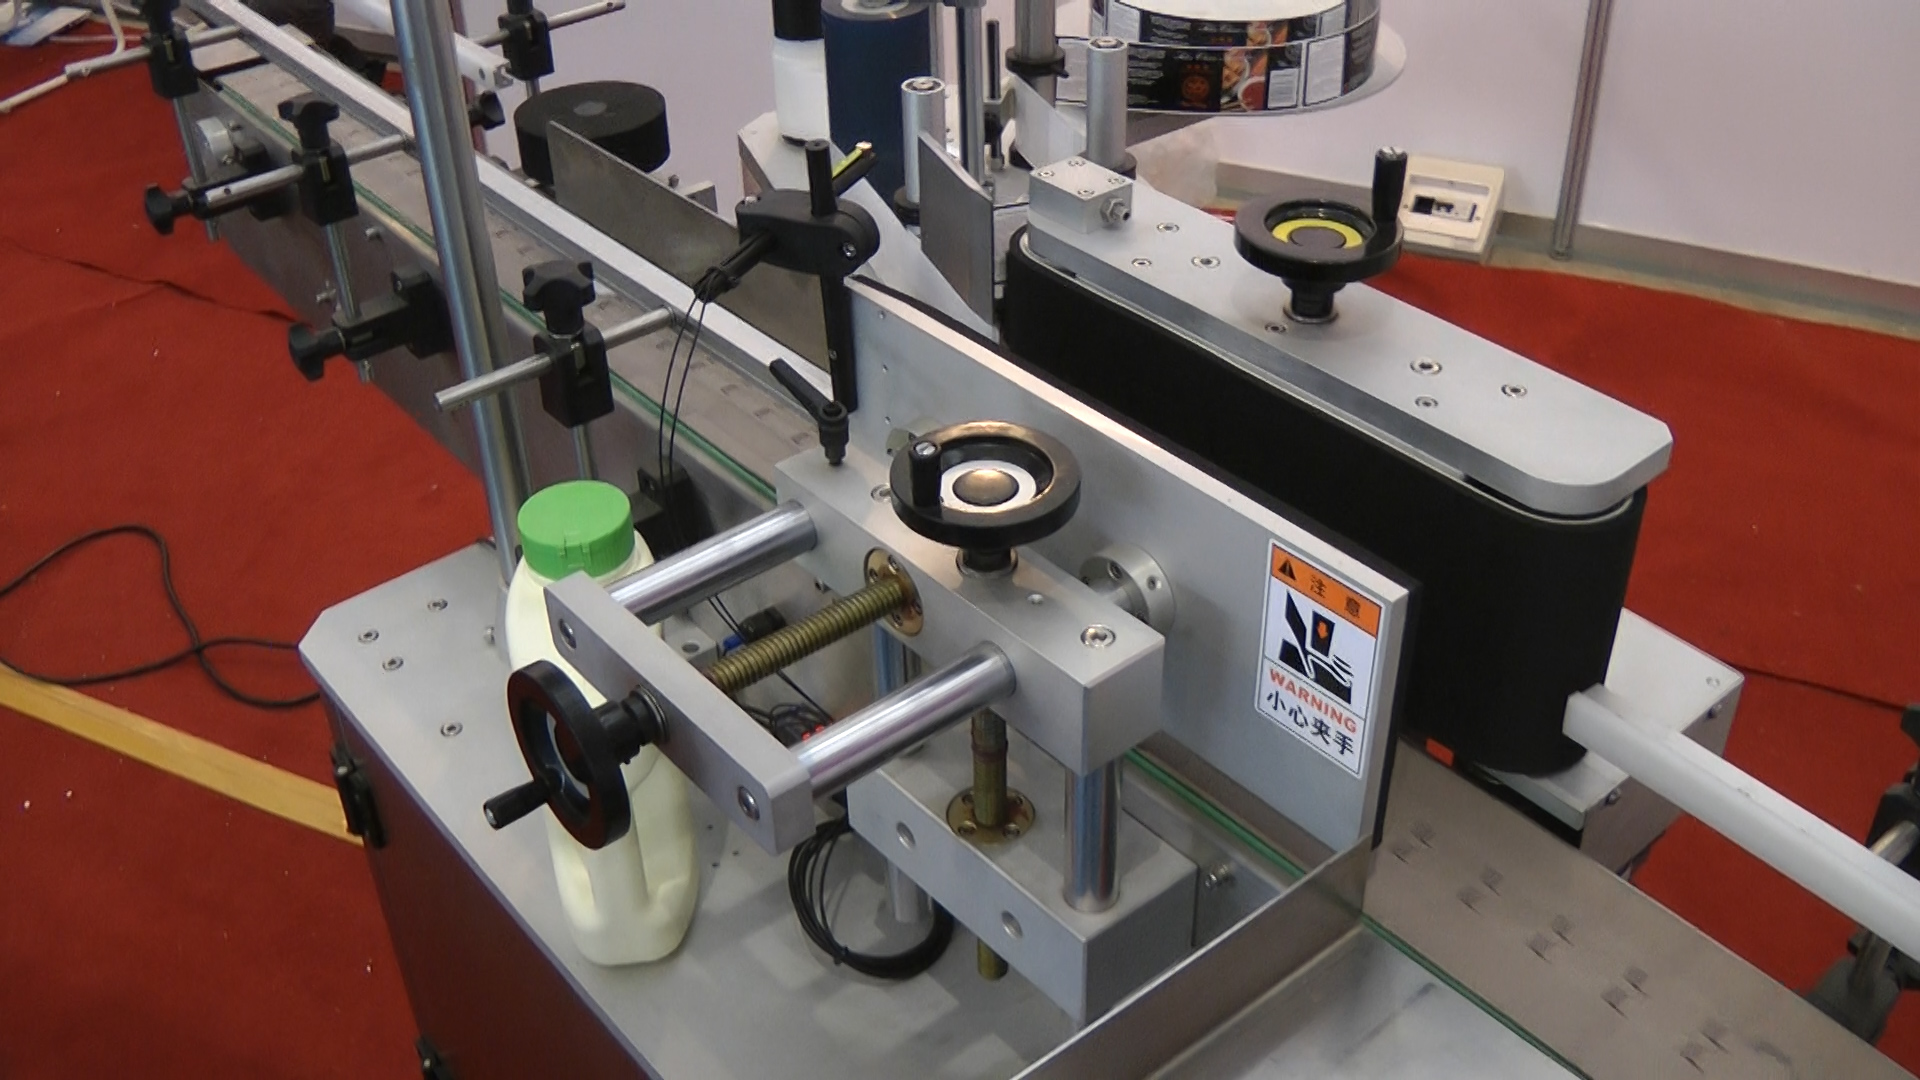 Automatic labeling equipment for bottles in pharmaceutical production